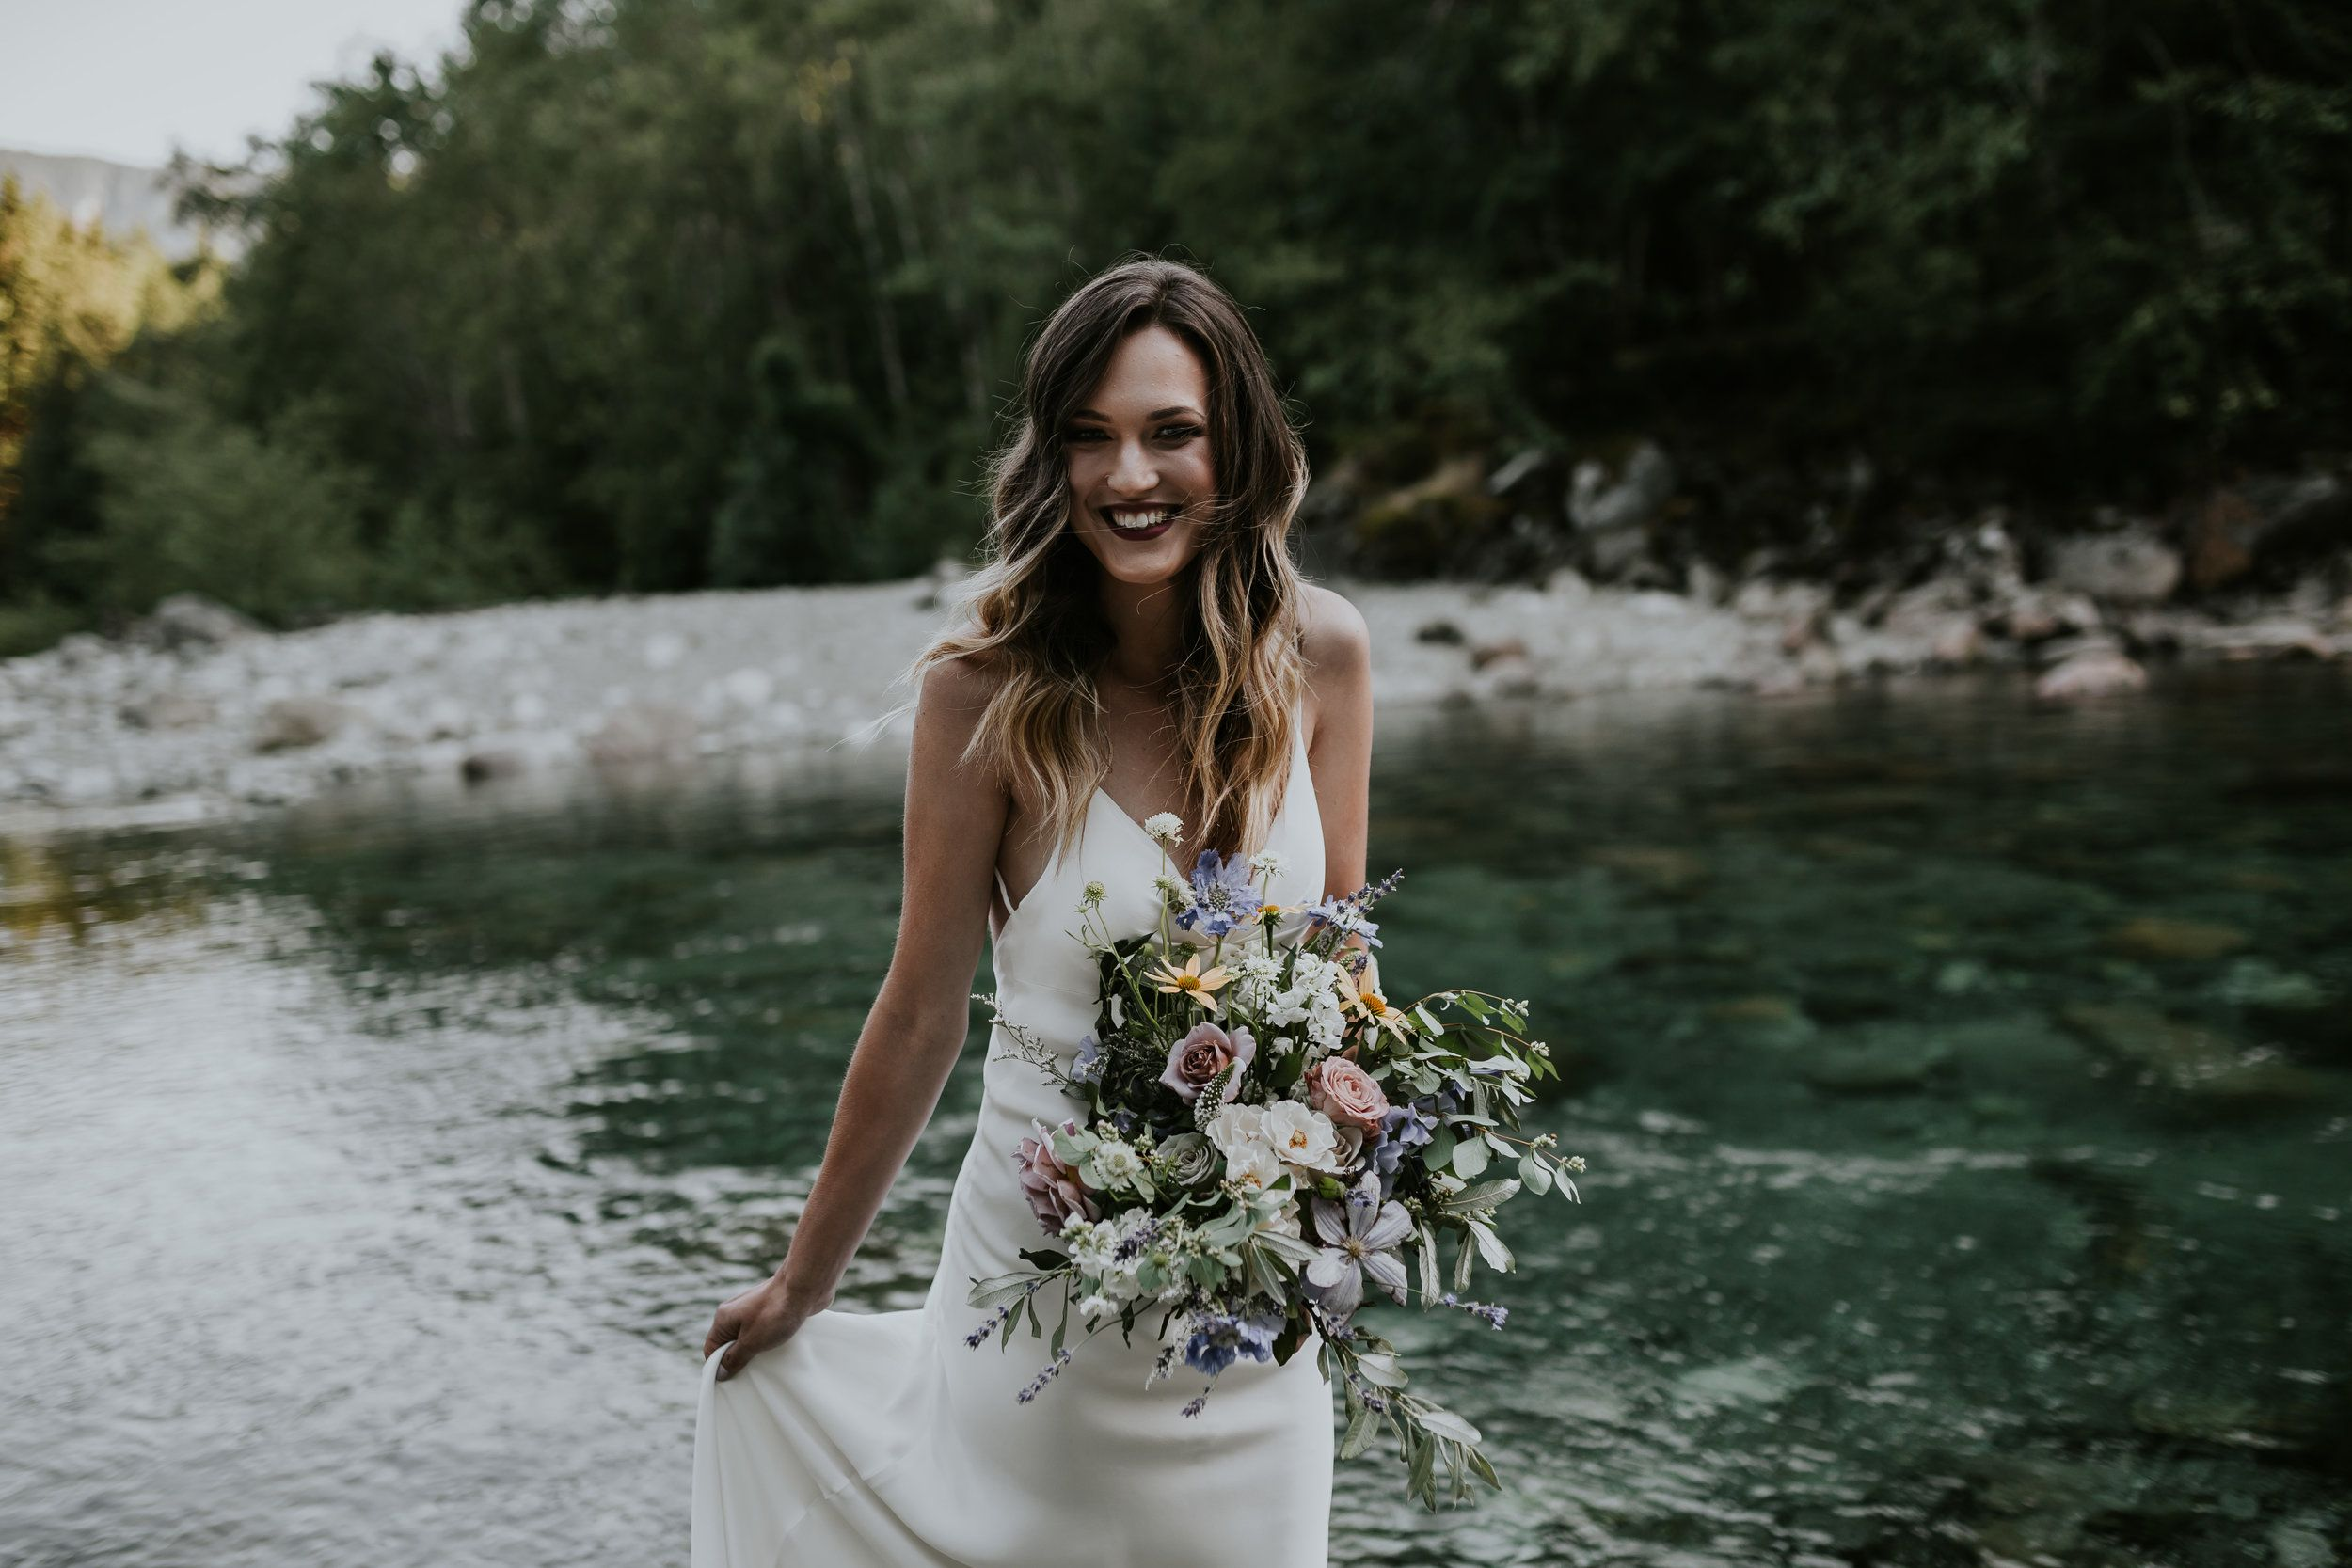 Pacific Northwest Bridal Styled Shoot by Cait Kennedy Photography ...